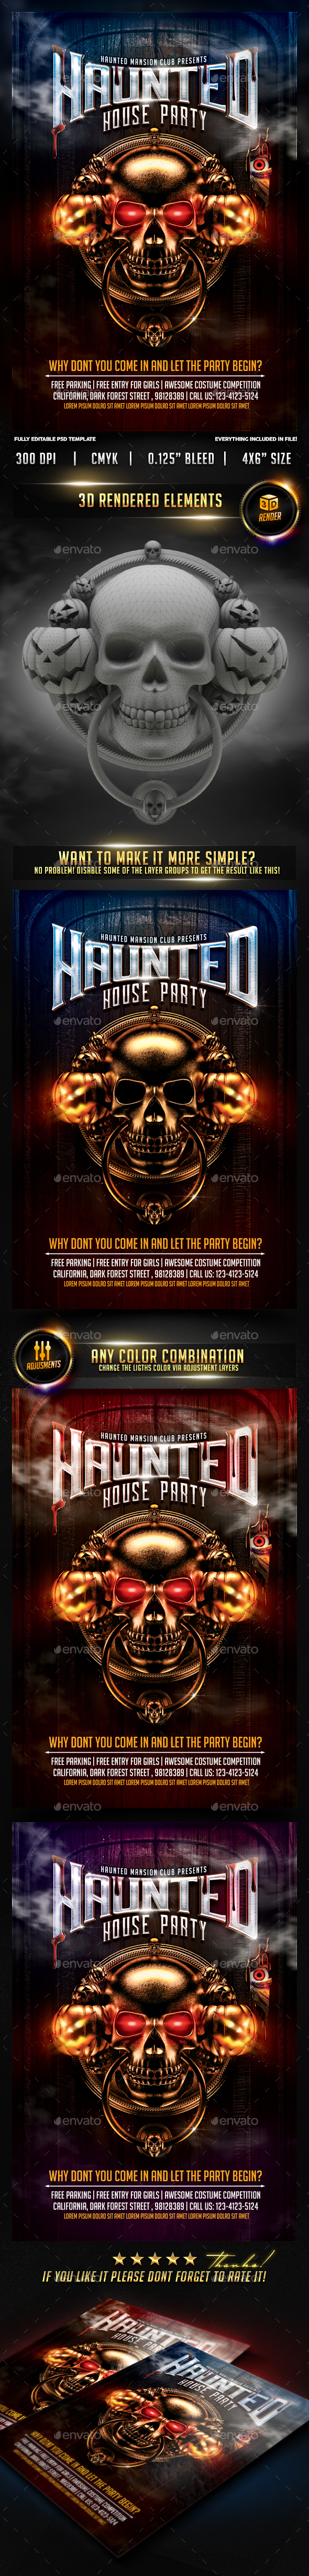 Haunted House Halloween Party Flyer - Clubs & Parties Events